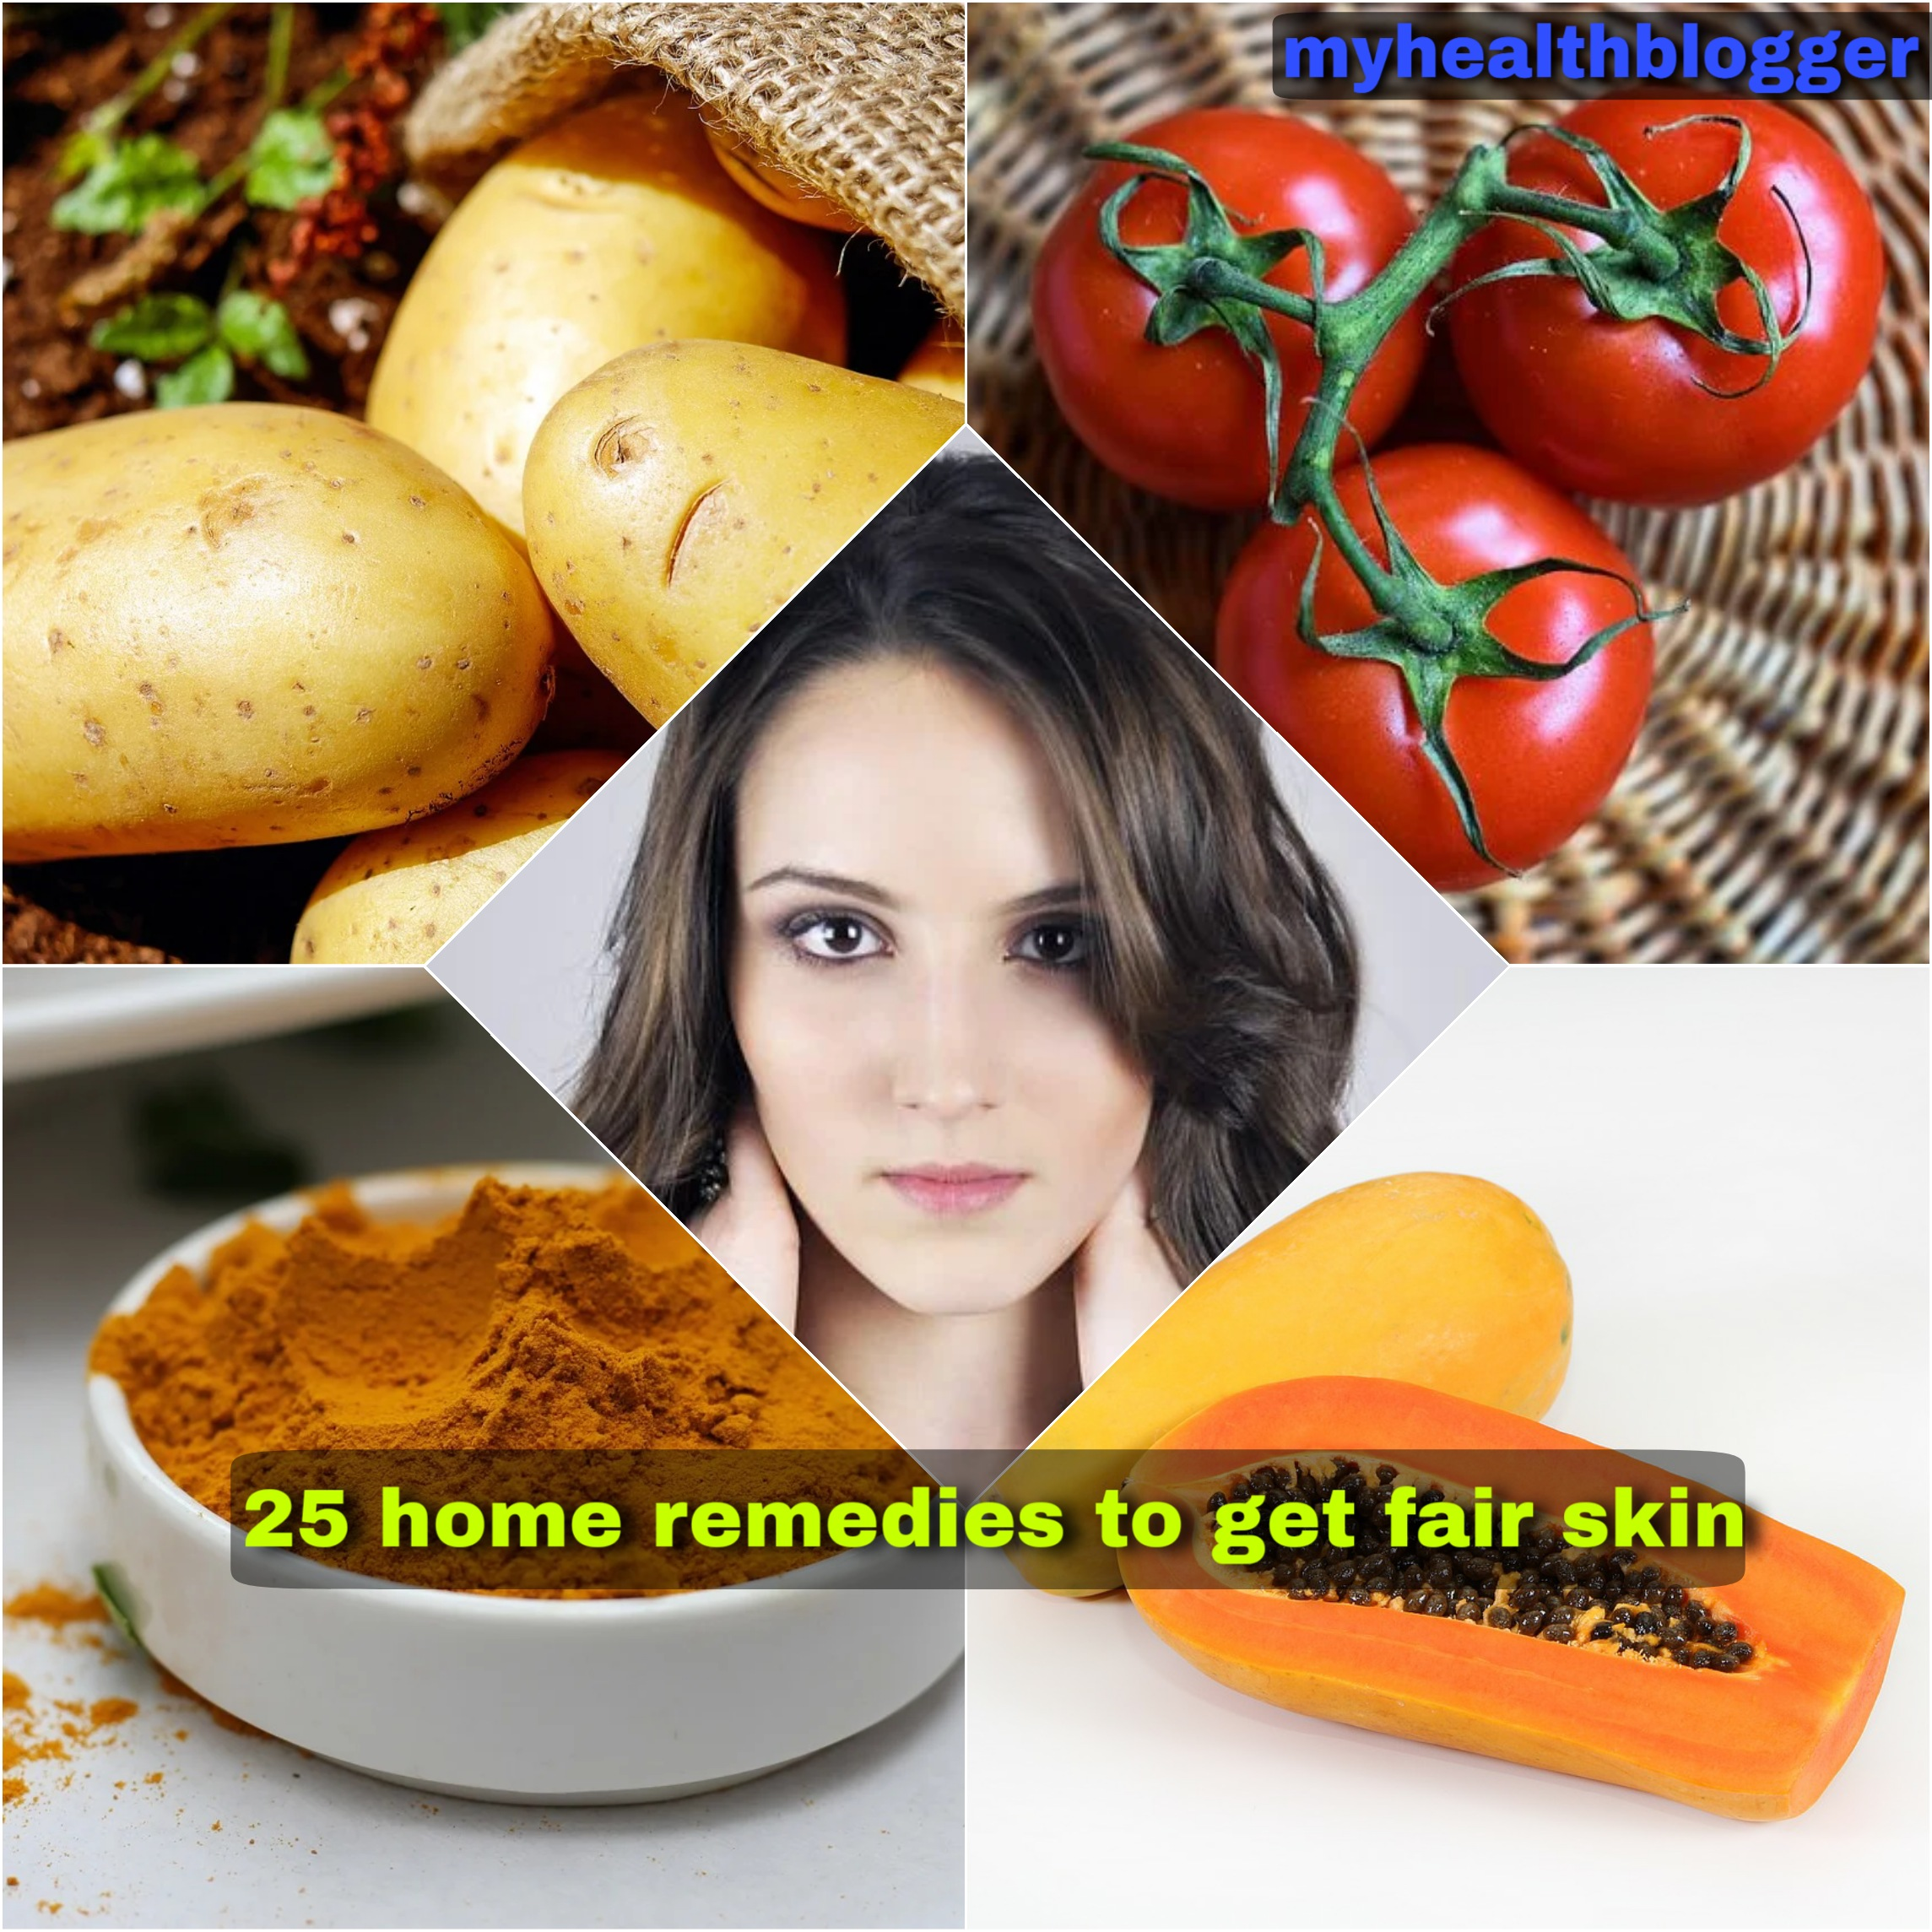 home remedies to get fair skin